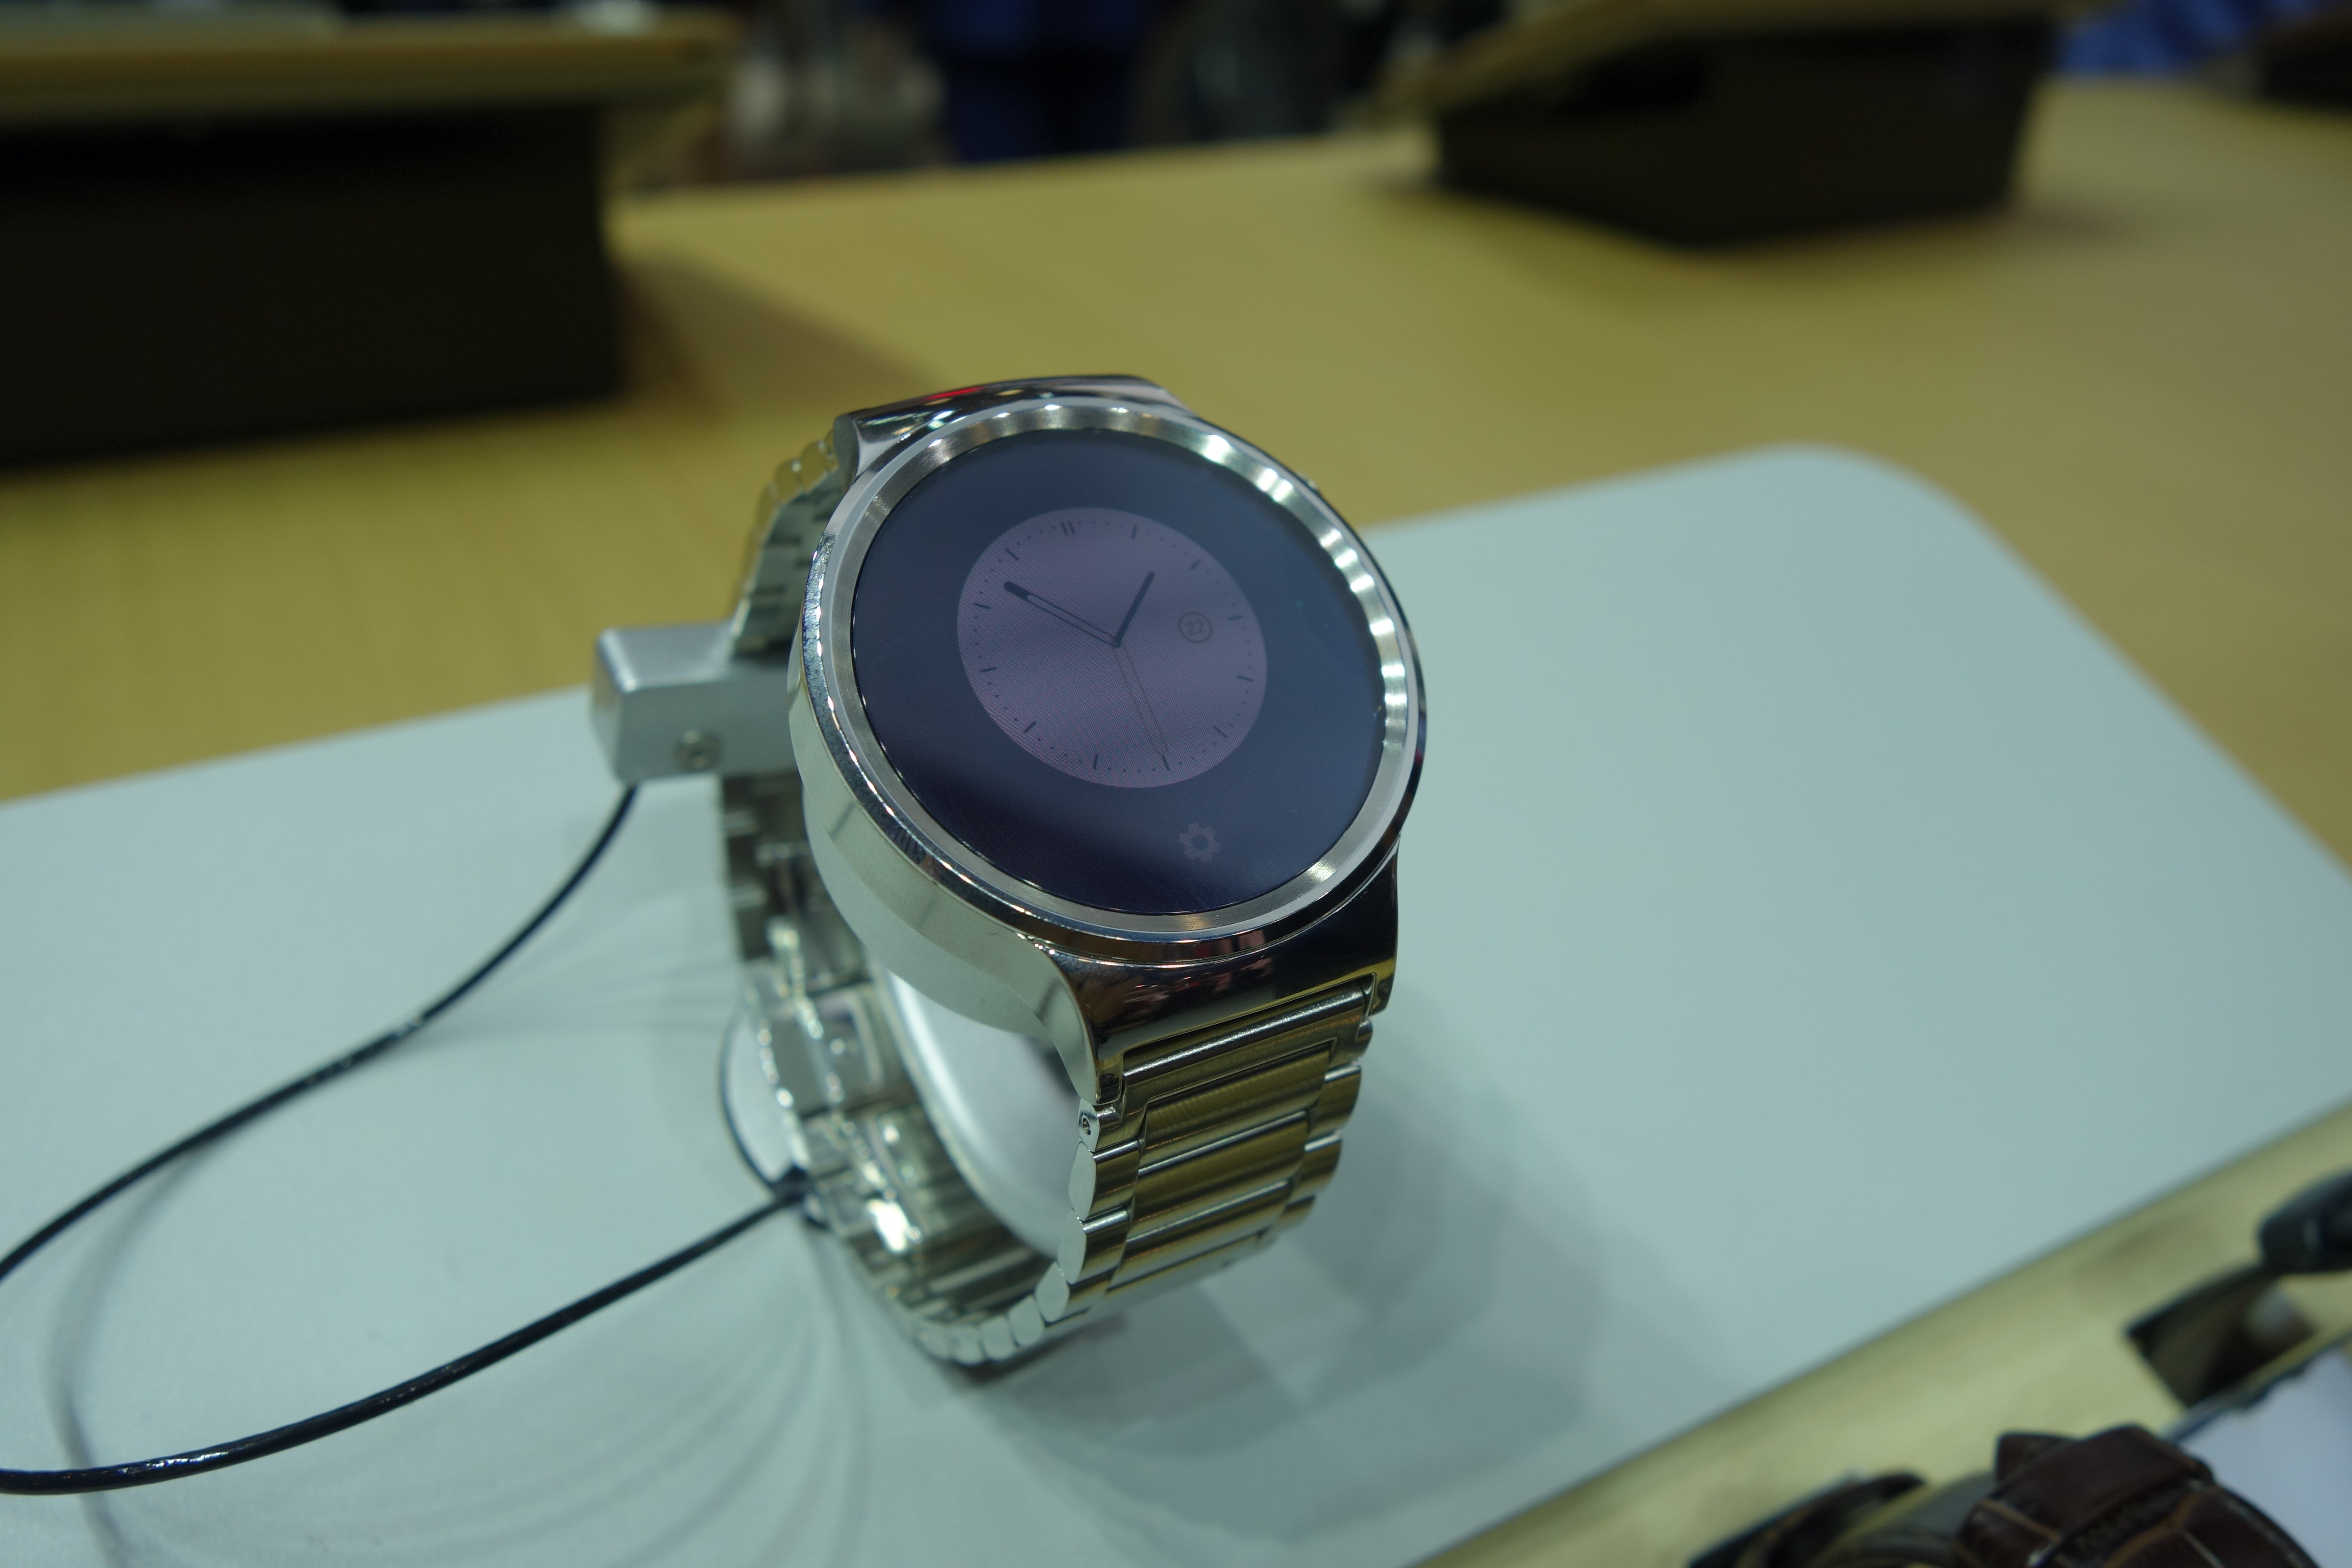 Moto 360 2015 Vs Huawei Watch The Battle For Most Like Motorola Smart Black Leather When Introduced Its Earlier This Year You Could Tell They Were Hot On Motorolas Heels A Premium Smartwatch Design